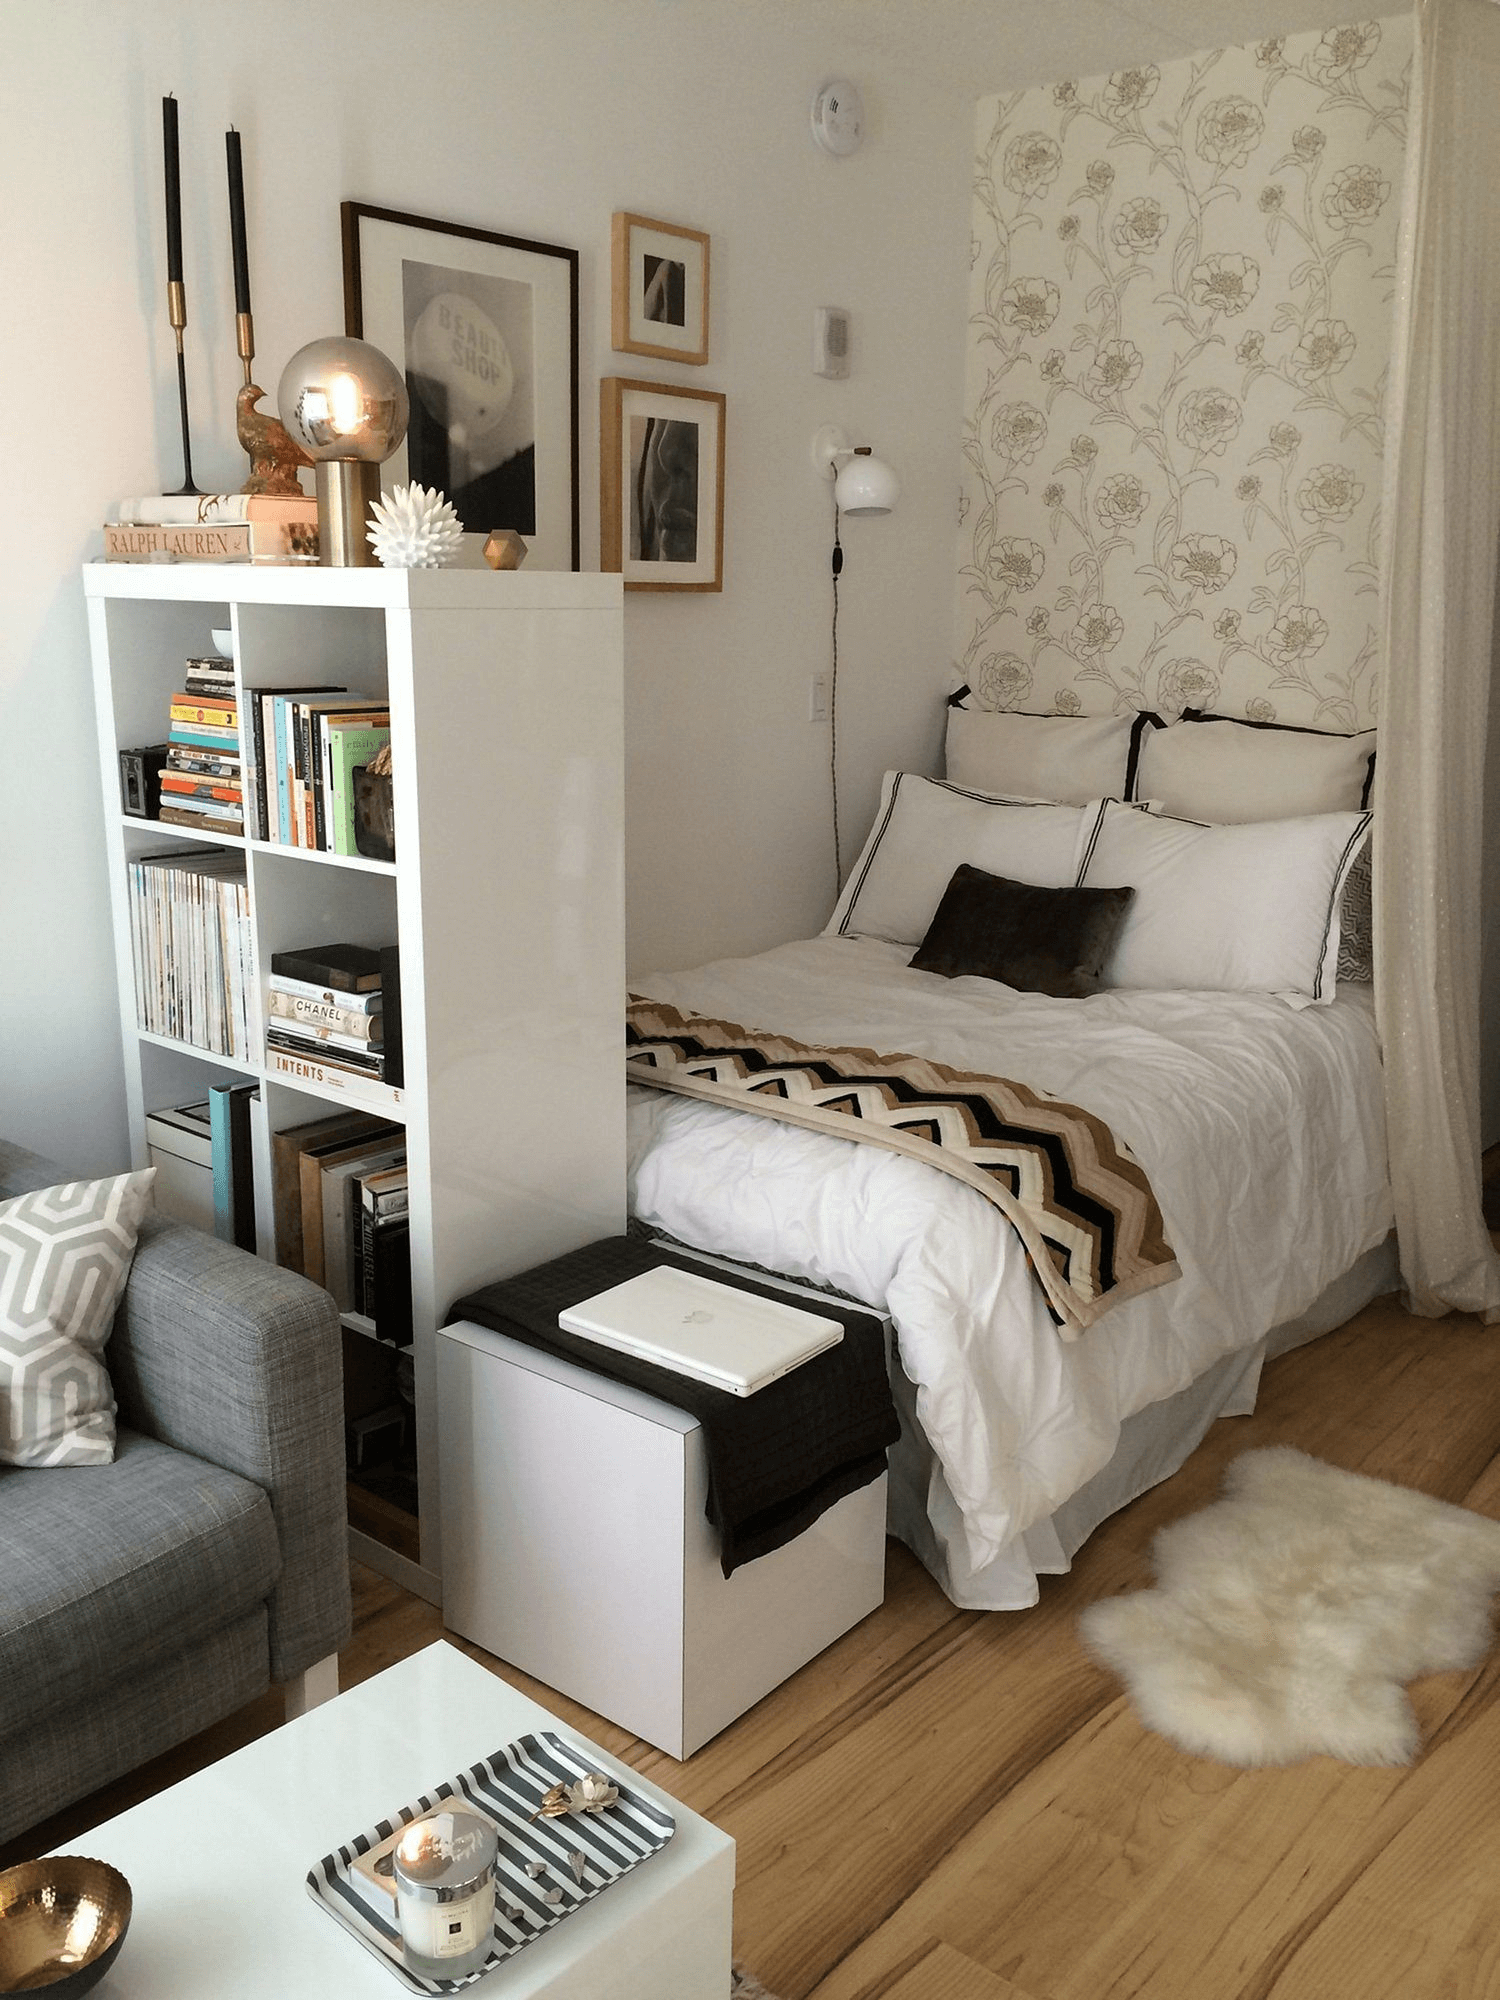 Small bedroom decor on budget